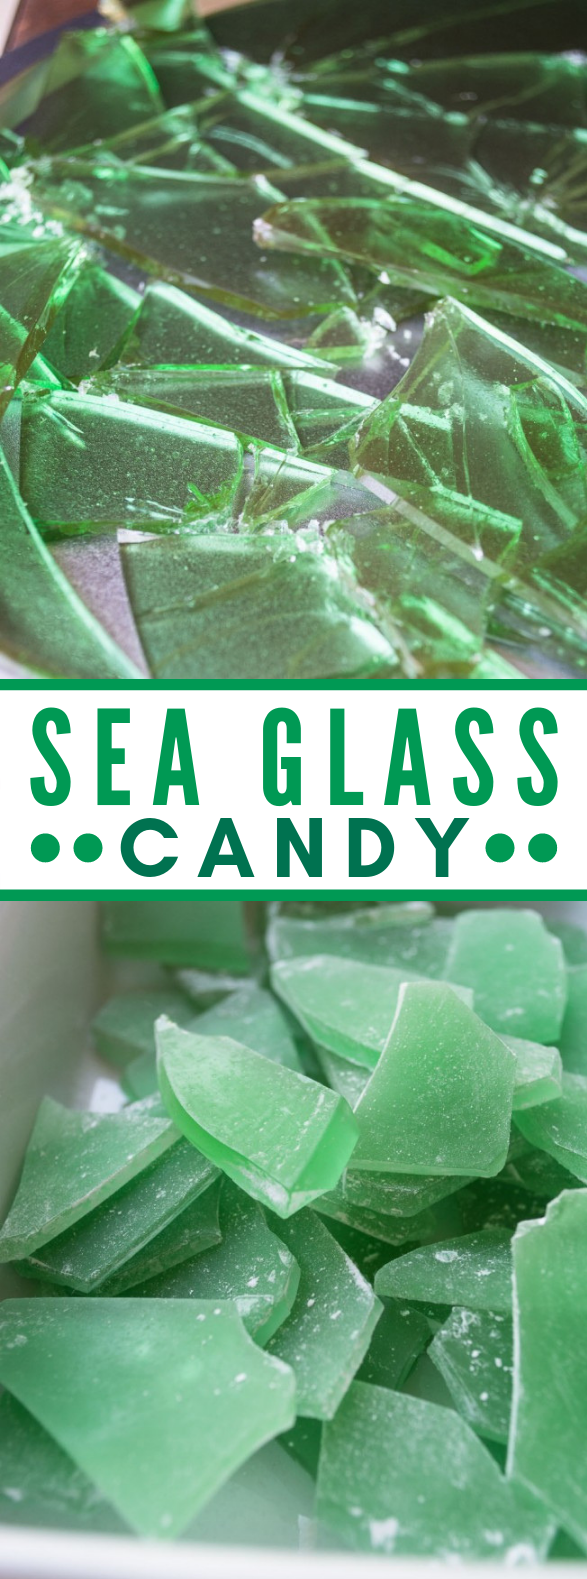 SEA GLASS CANDY #sweets #homemade